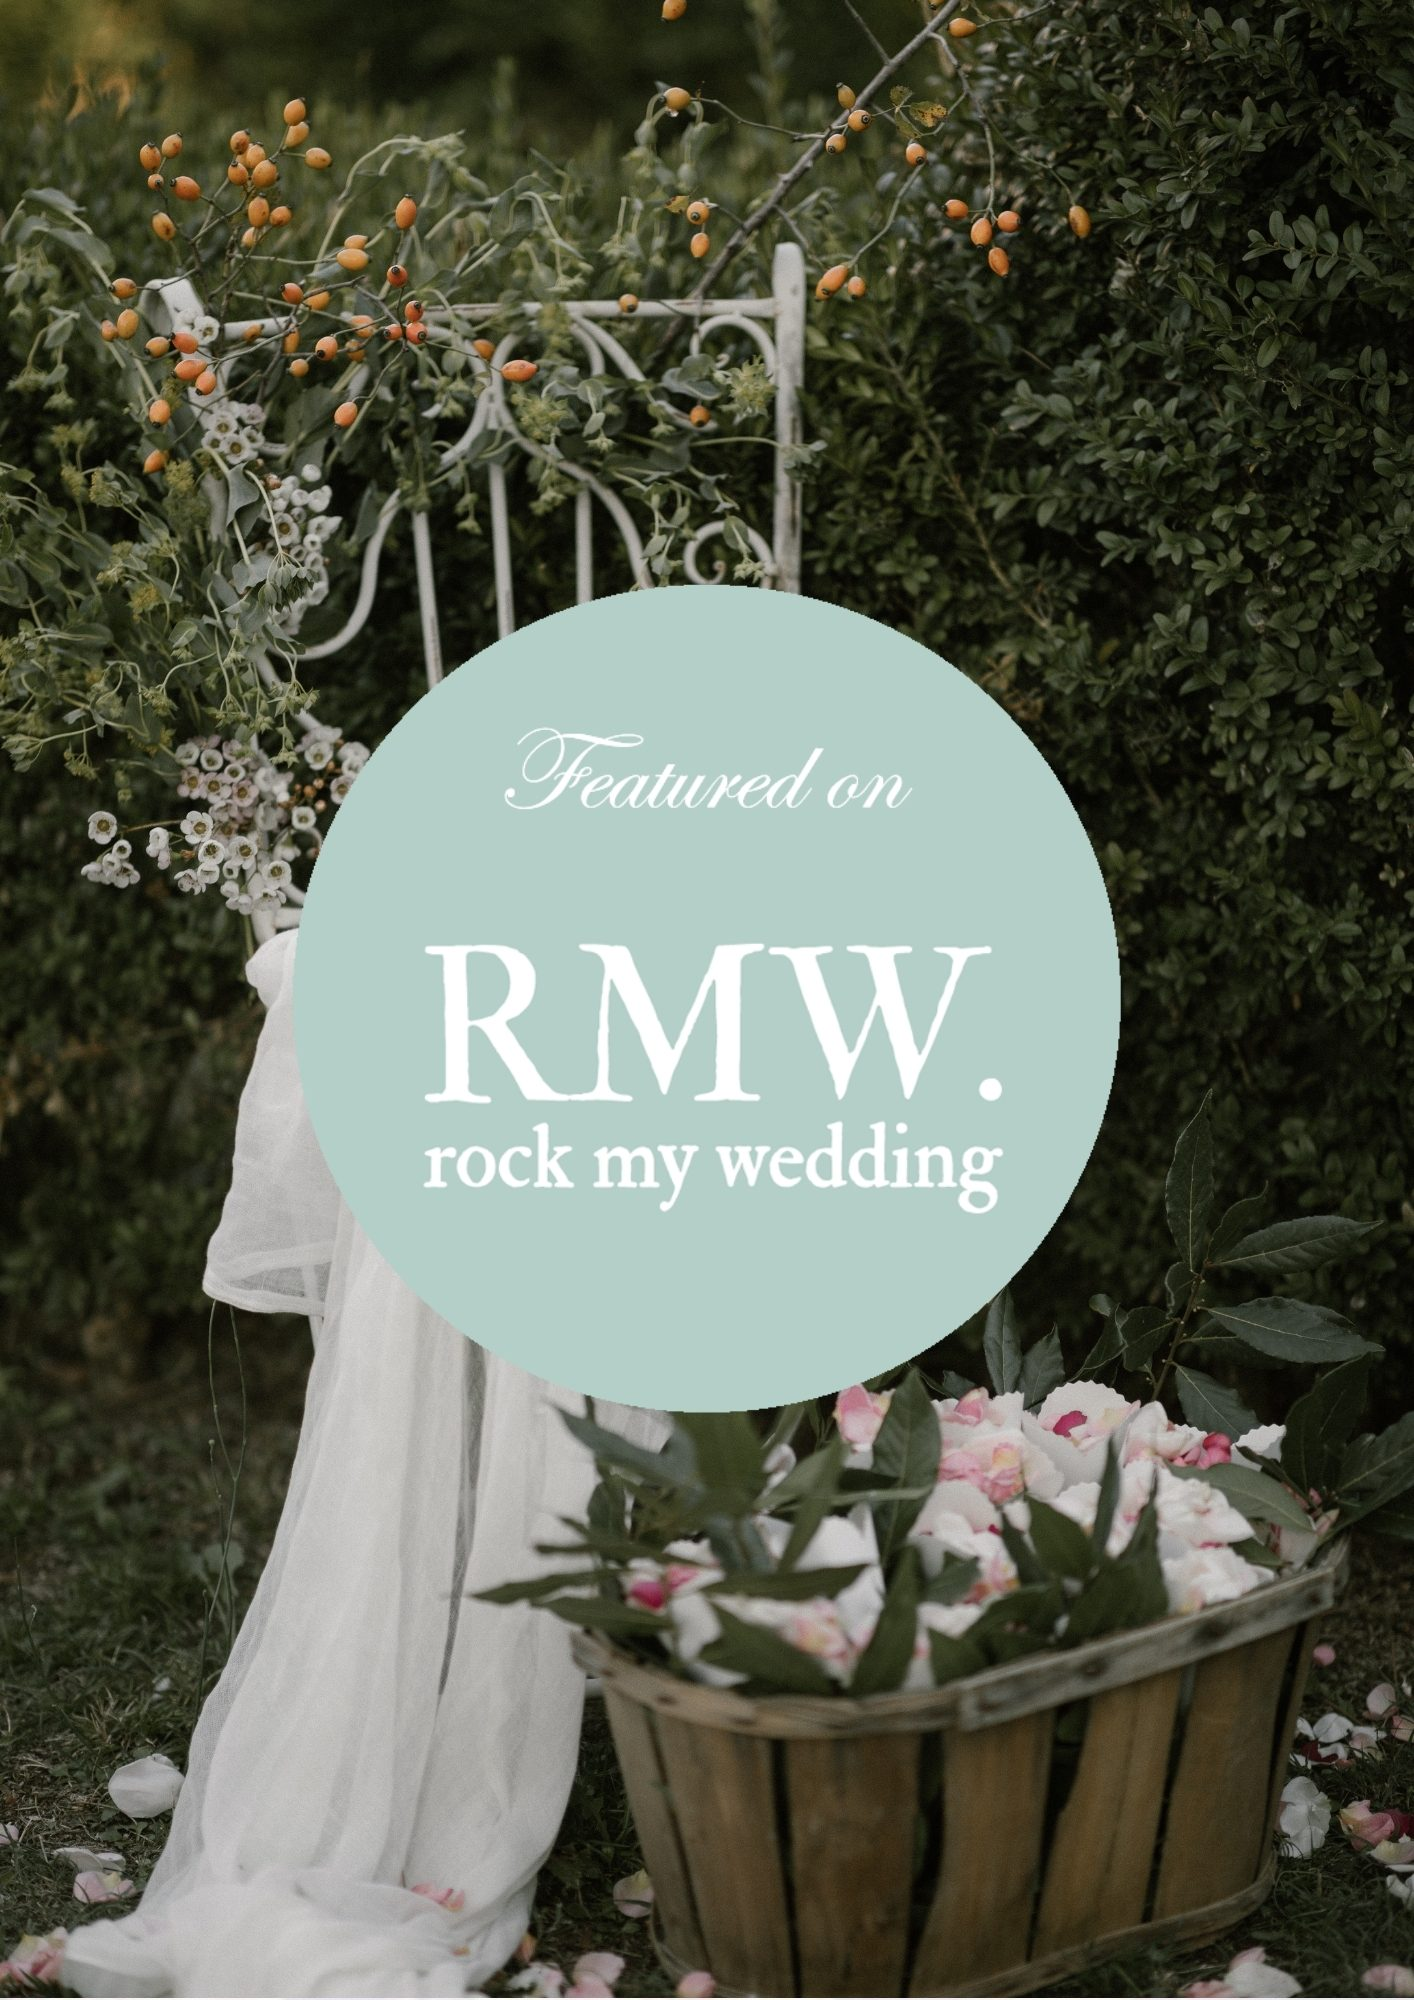 Giulia-Alessandri-Wedding-Planner-Tuscany- Featured on -Rock my Wedding